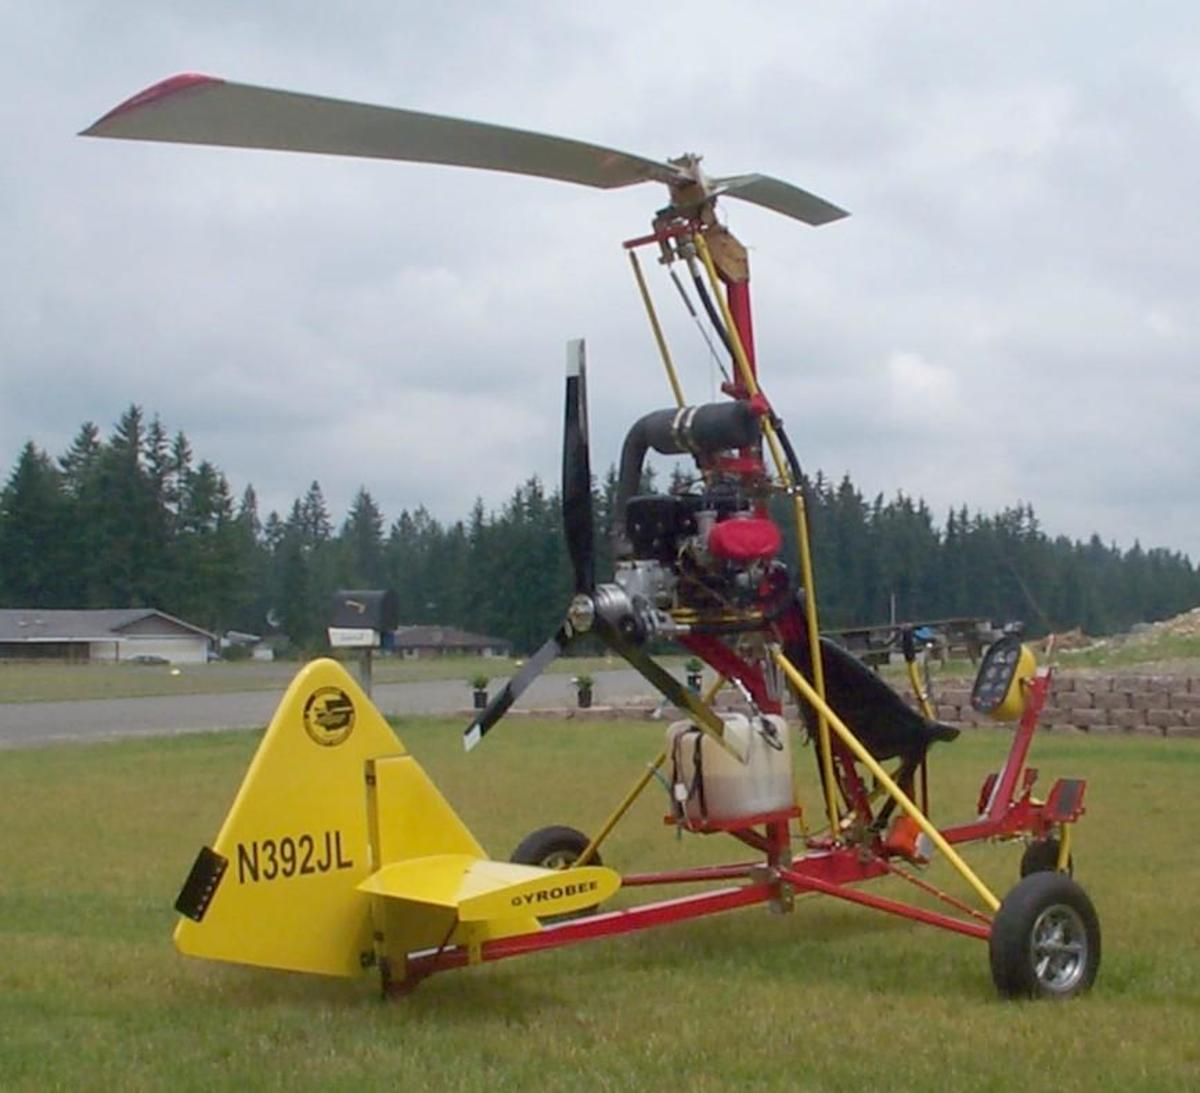 FAR 103 legal ultralight gyrocopter.